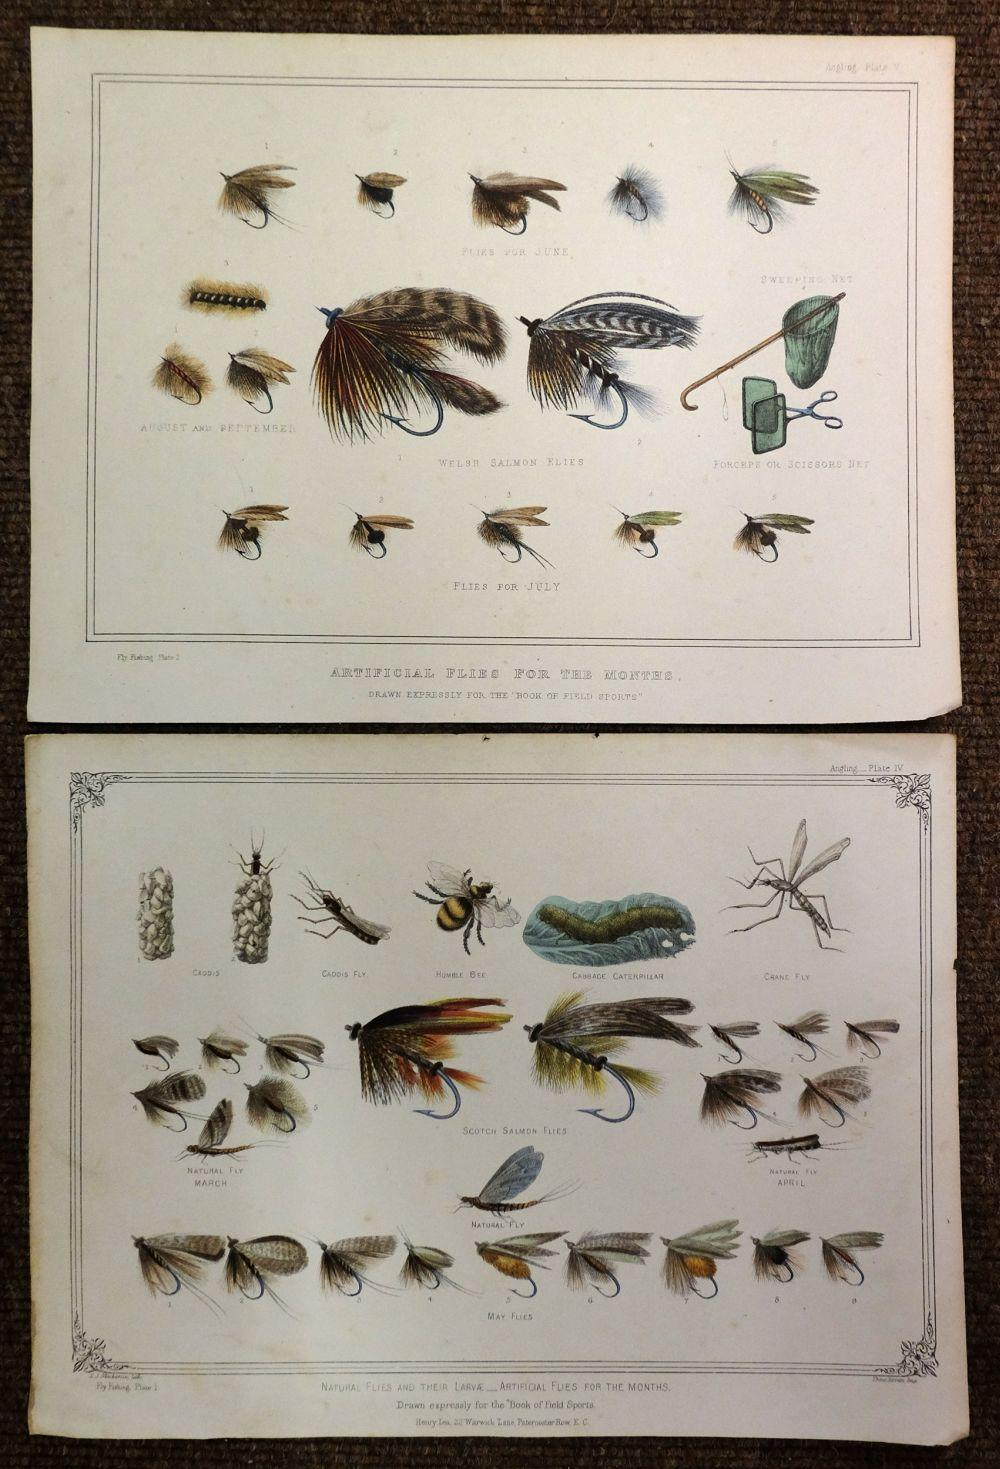 * Dogs & Natural History. A mixed collection of approximately 400 prints, 19th & 20th century